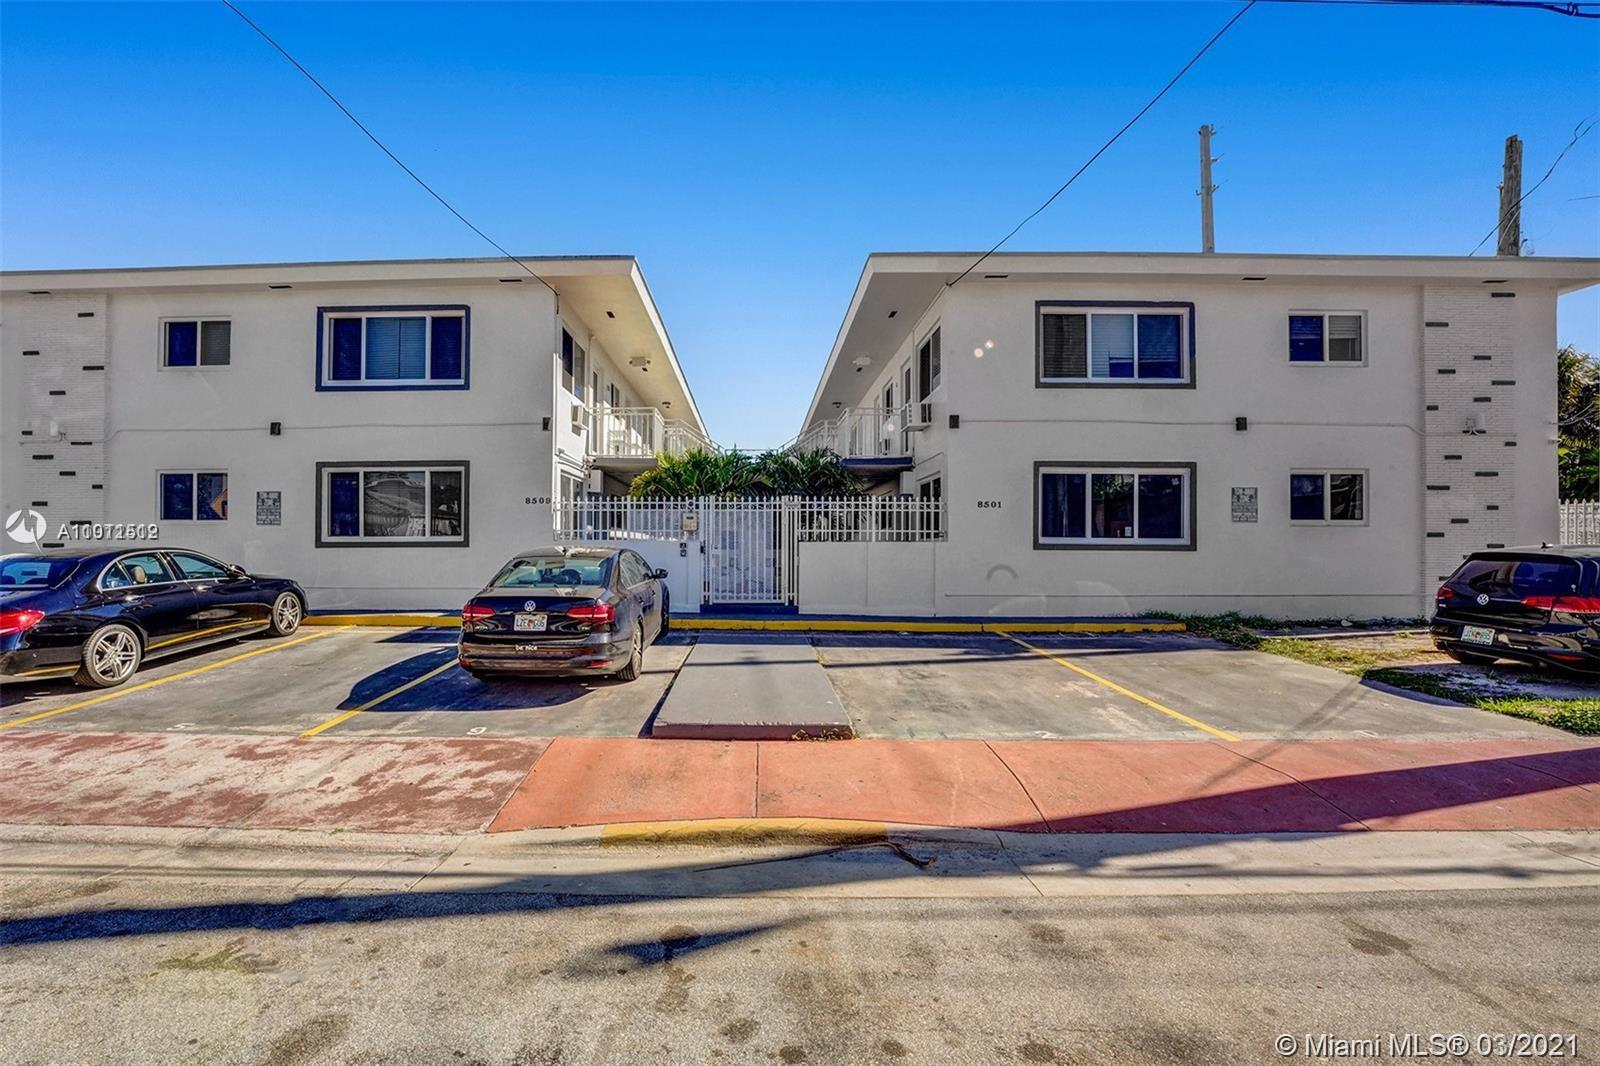 Apt by the water. New impact windows & air-con units. 2 bed, 2 full bath. Boat deck/granite kitchen counters/wood cabinetry/washer/dryer/tiled floors. Great for investors.